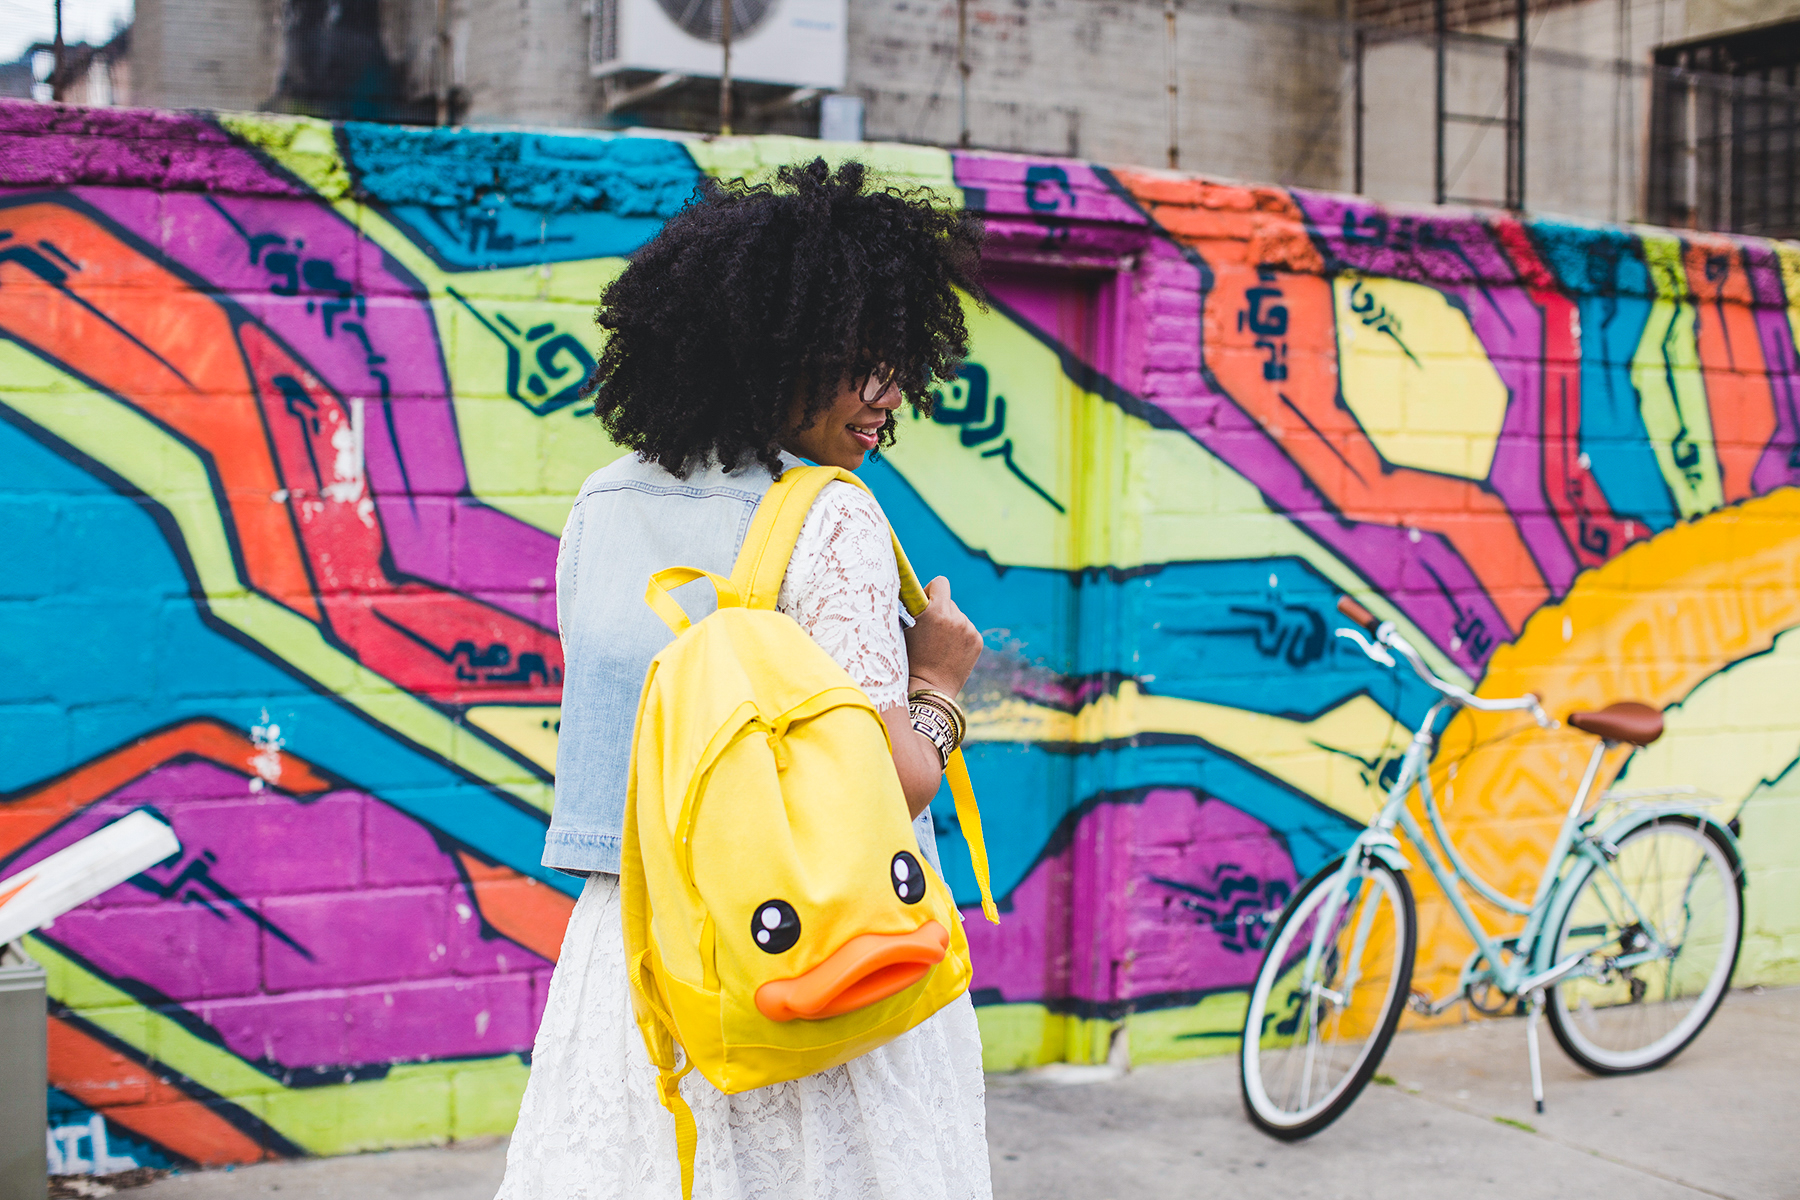 Bicycle Review for the Fashion, Budget and Health Conscious